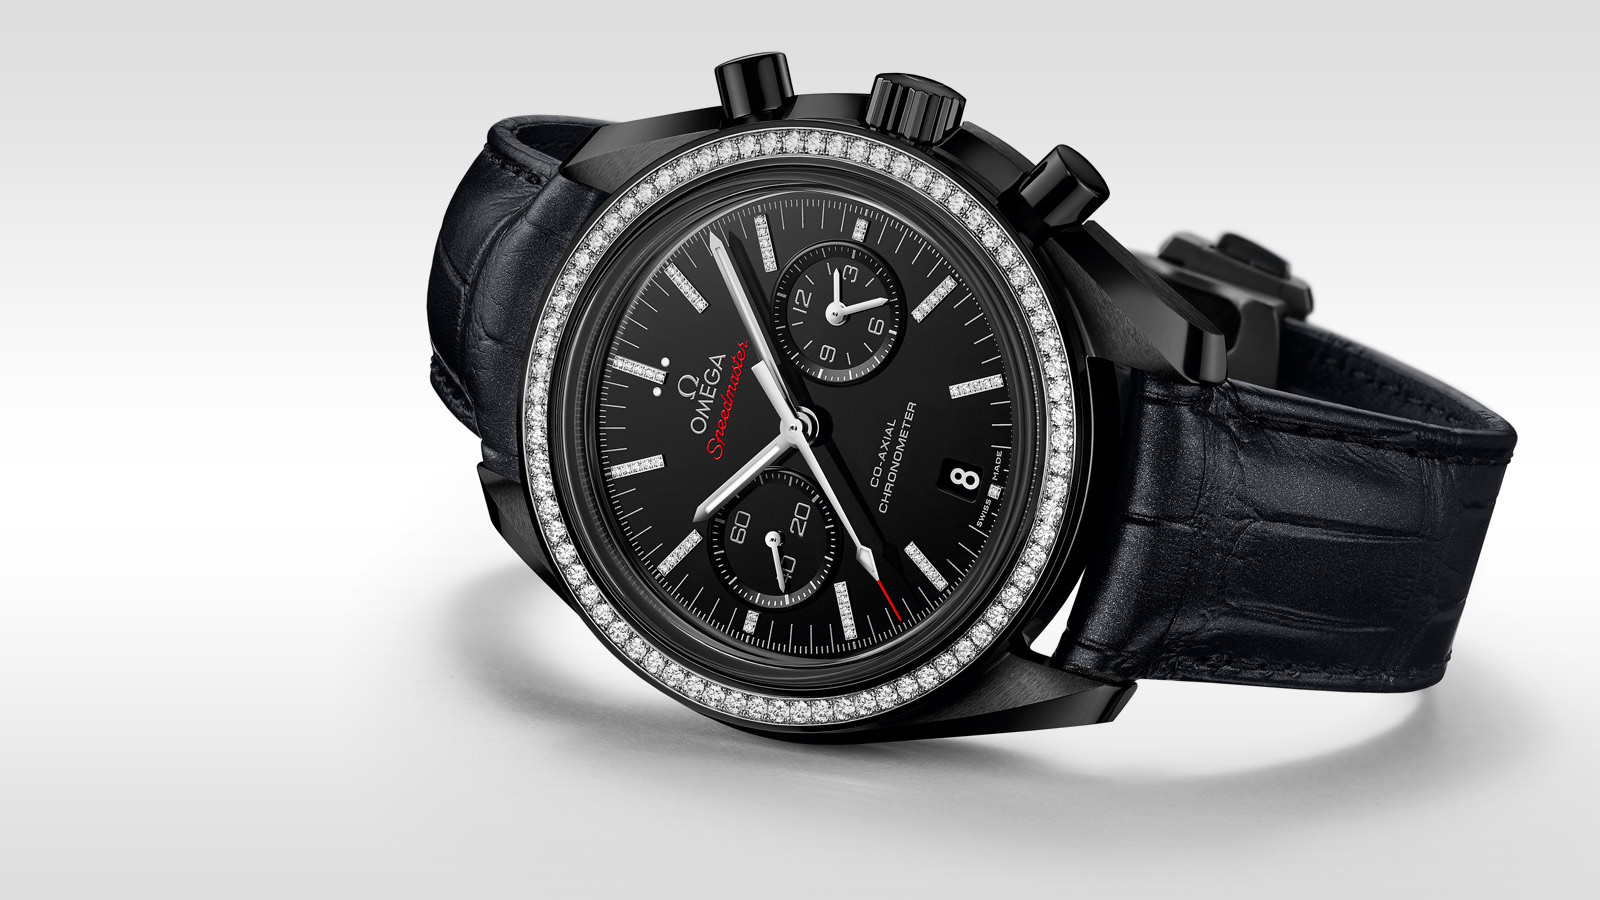 Speedmaster Moonwatch Moonwatch Omega Co‑Axial Chronograph 44,25 mm - 311.98.44.51.51.001 - Visualizzare 1